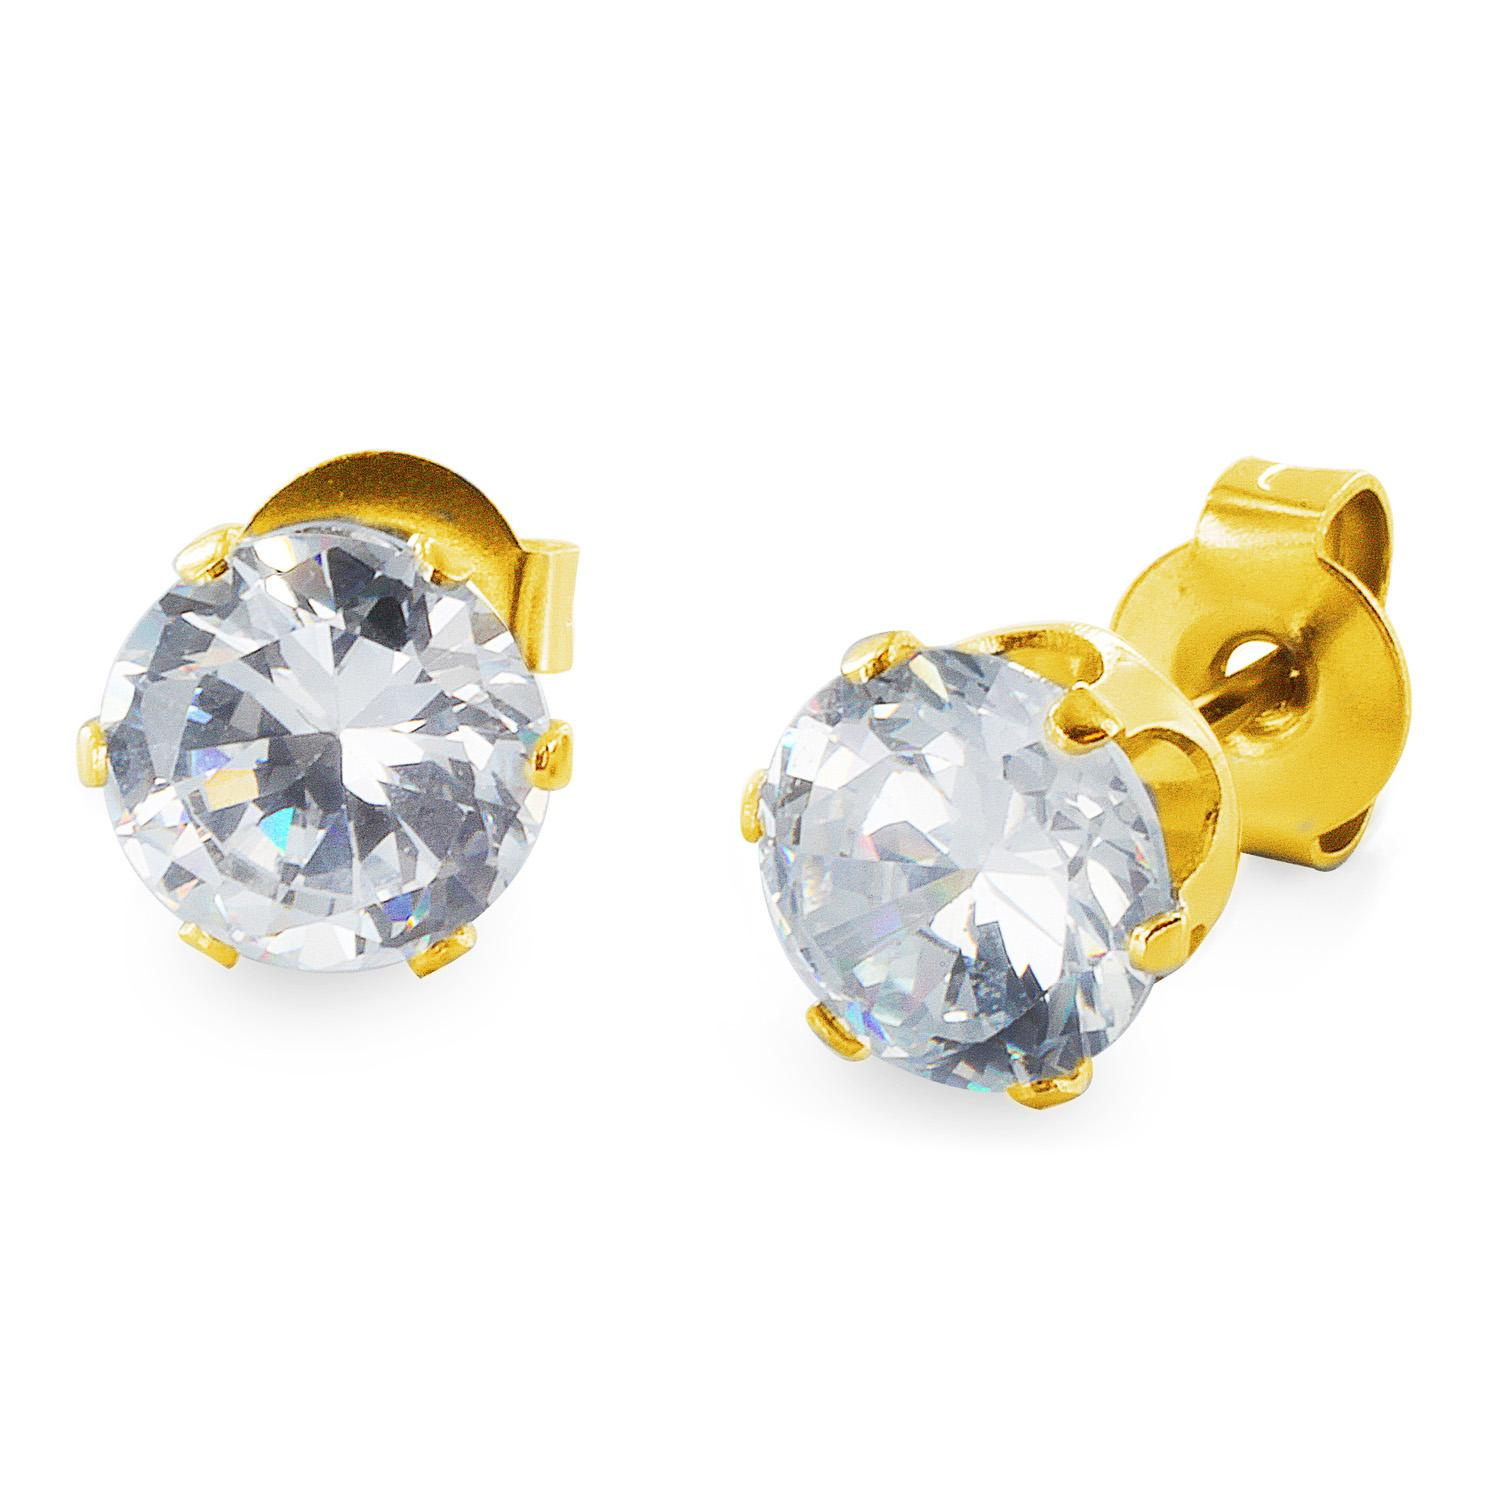 Gold Plated Stainless Steel Stud Earrings with Round Clear CZ - 5 mm